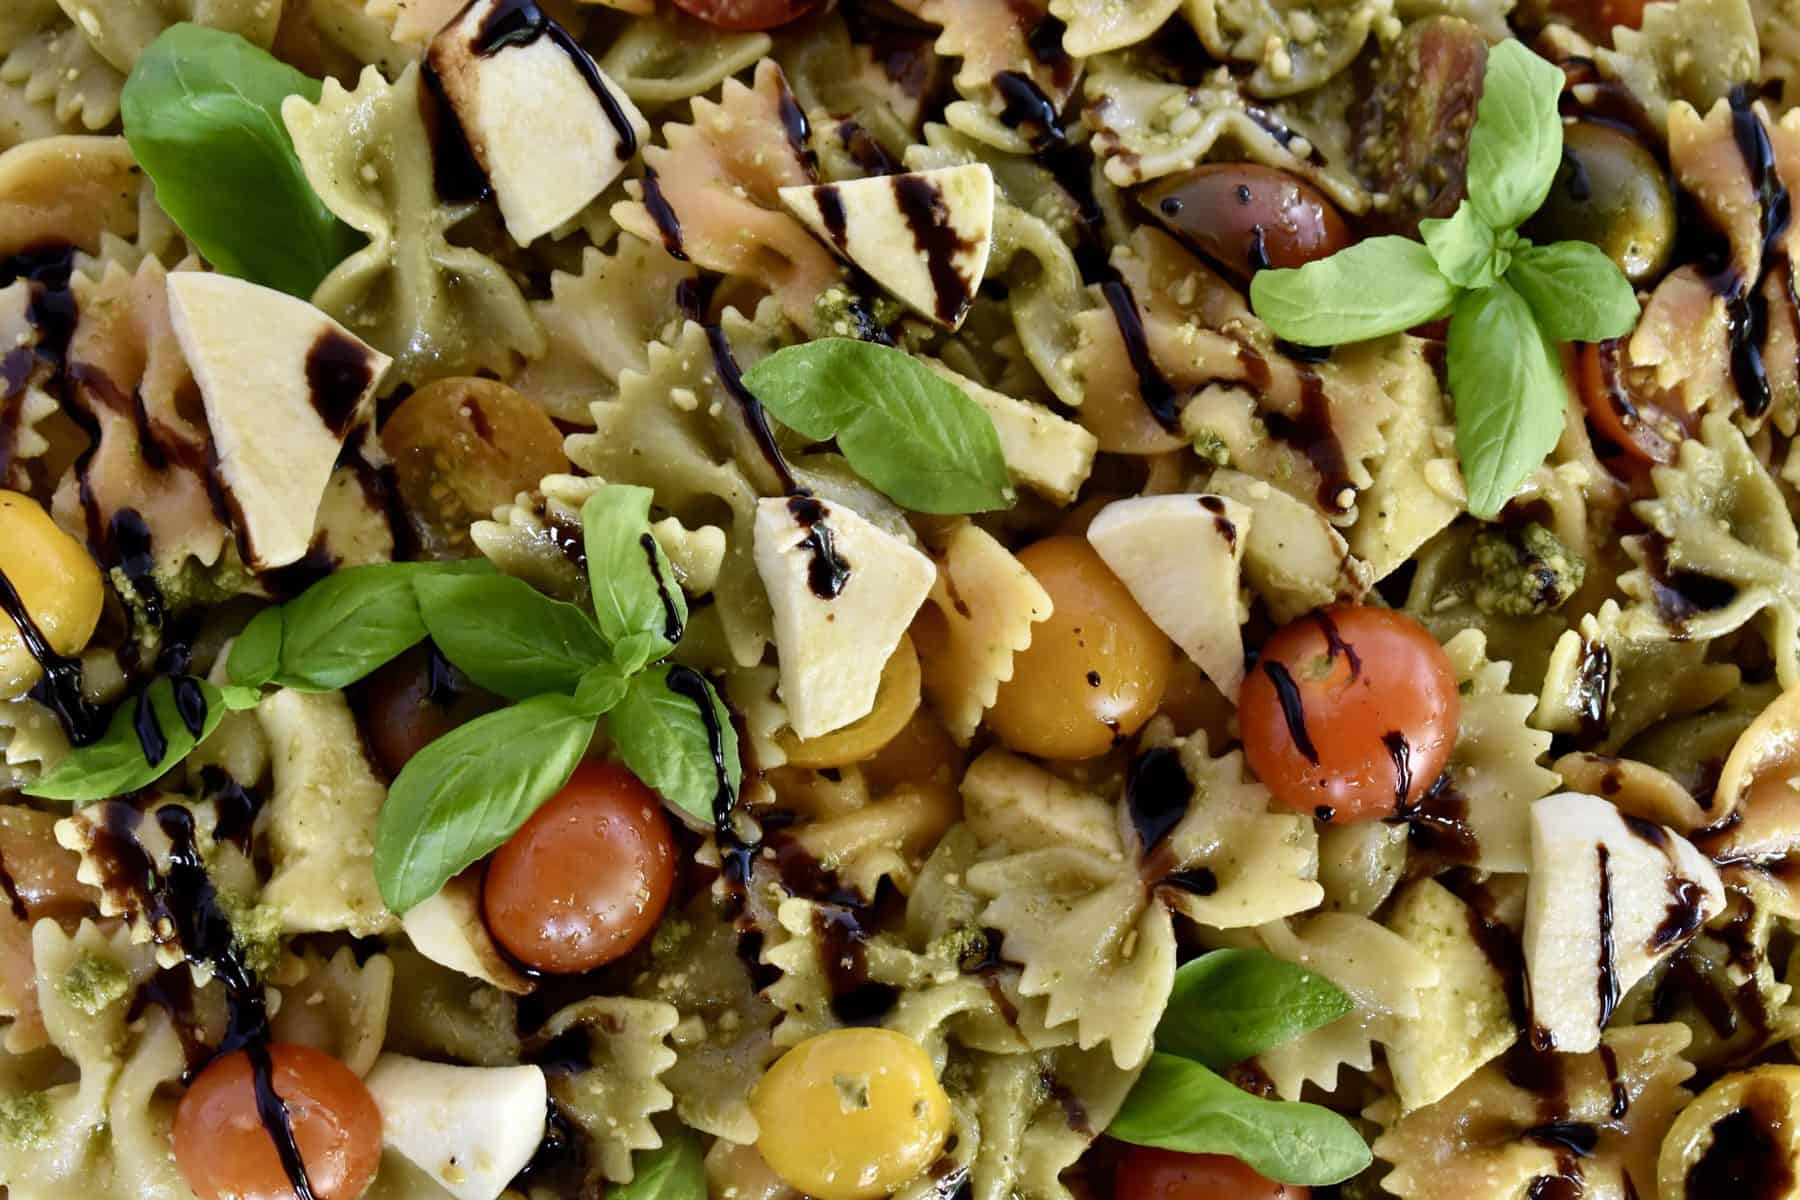 Overhead closeup photo of pesto pasta salad with balsamic drizzle overtop.